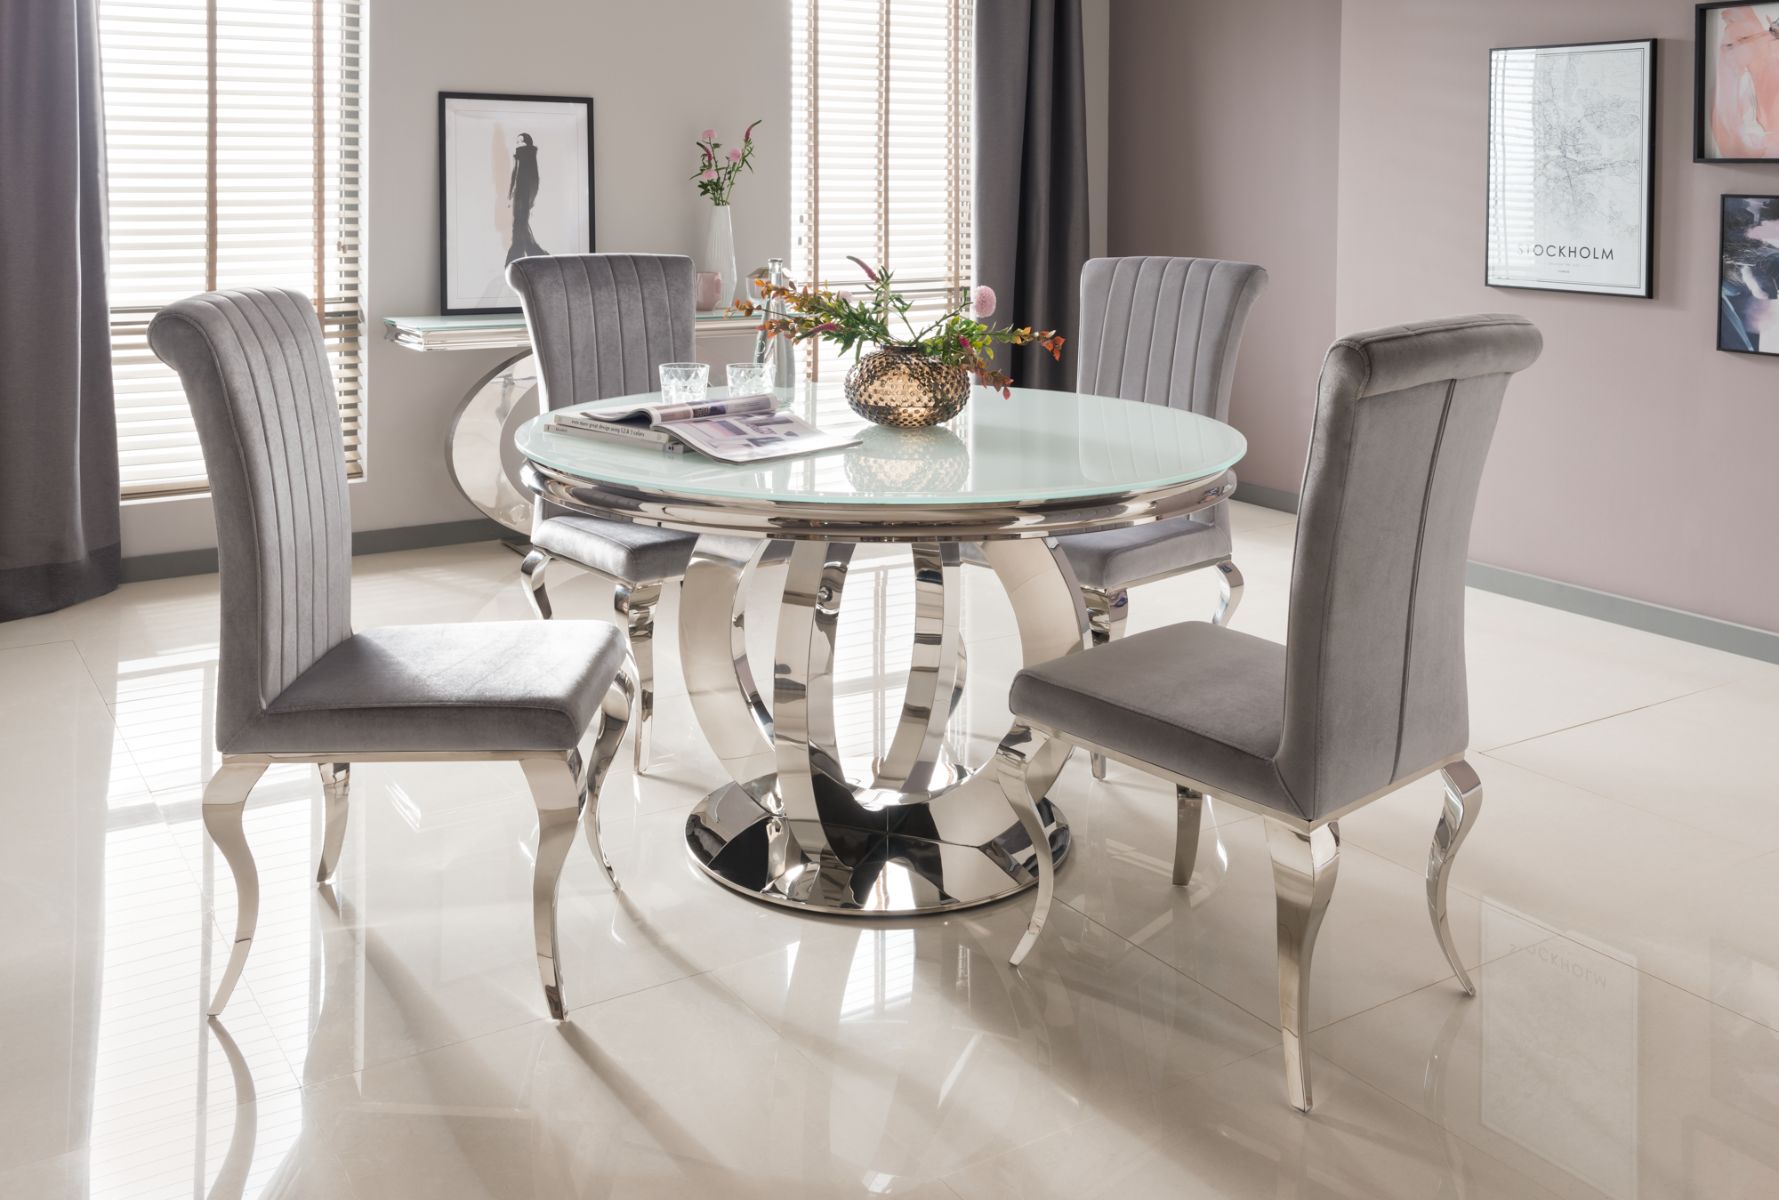 Orion 130cm Round White Glass Dining Table with 4 Nicole Silver Fabric Chairs